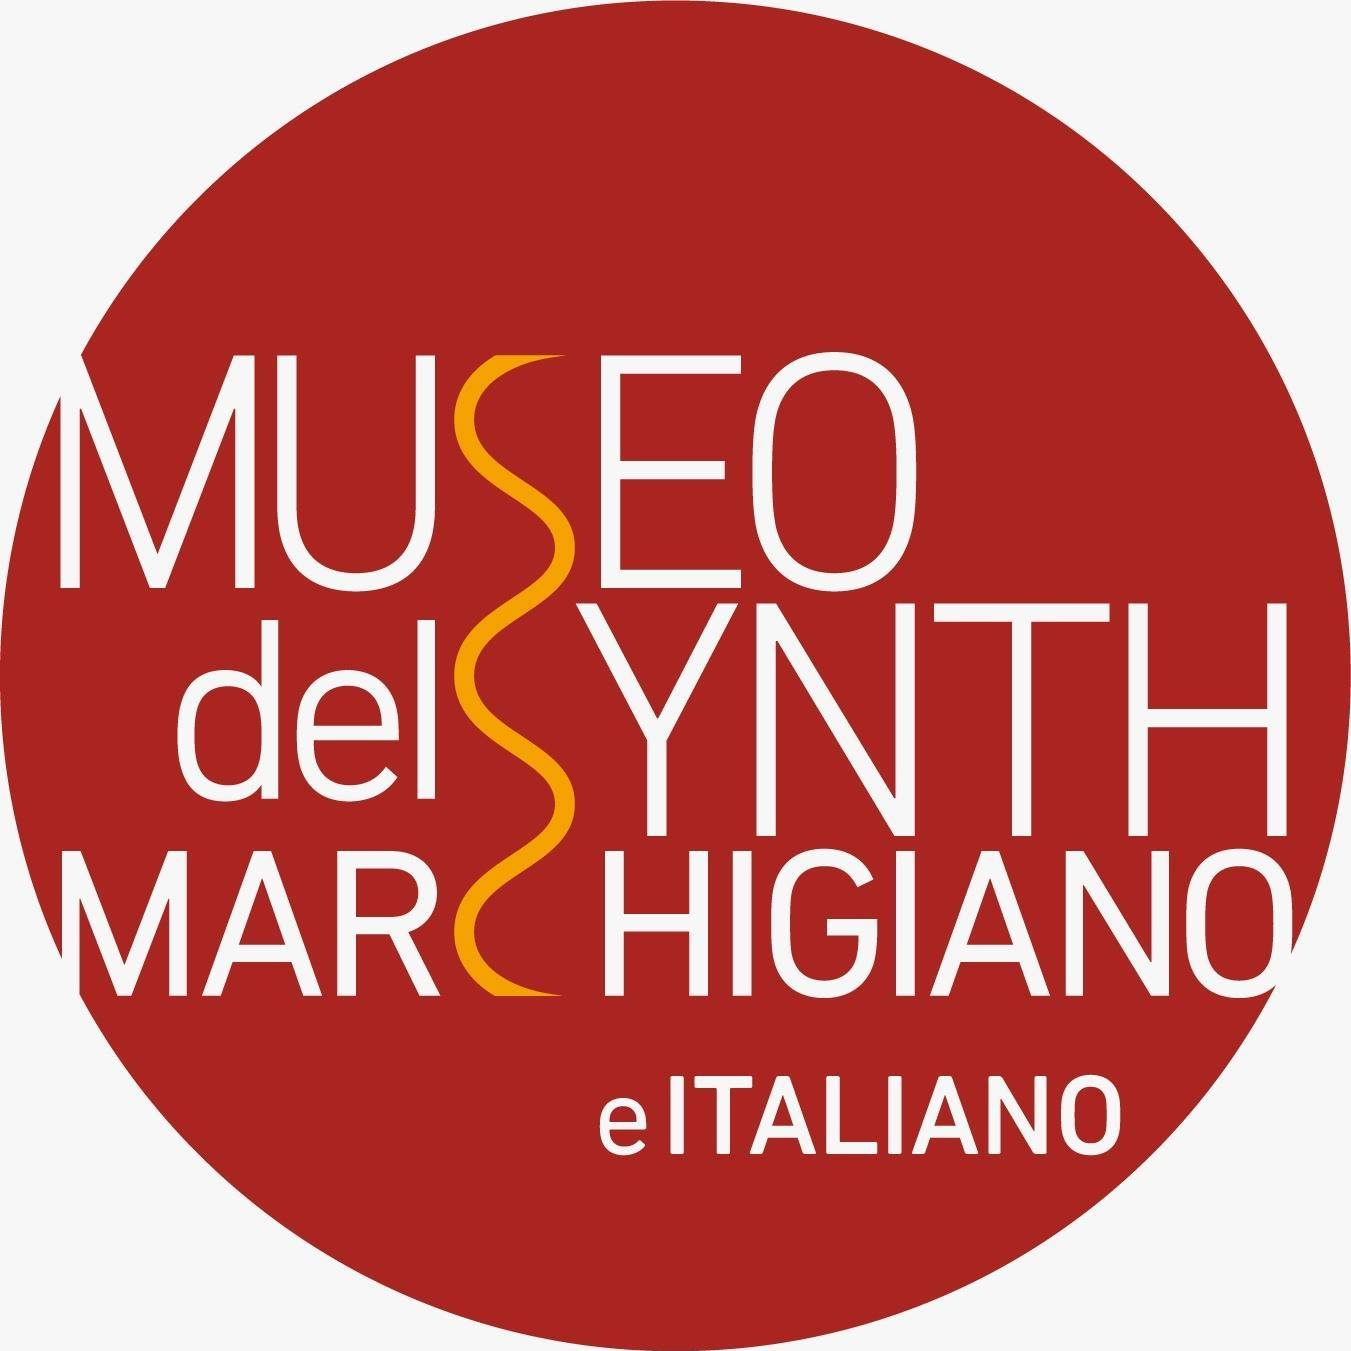 museo_synth_classic_2_vintage